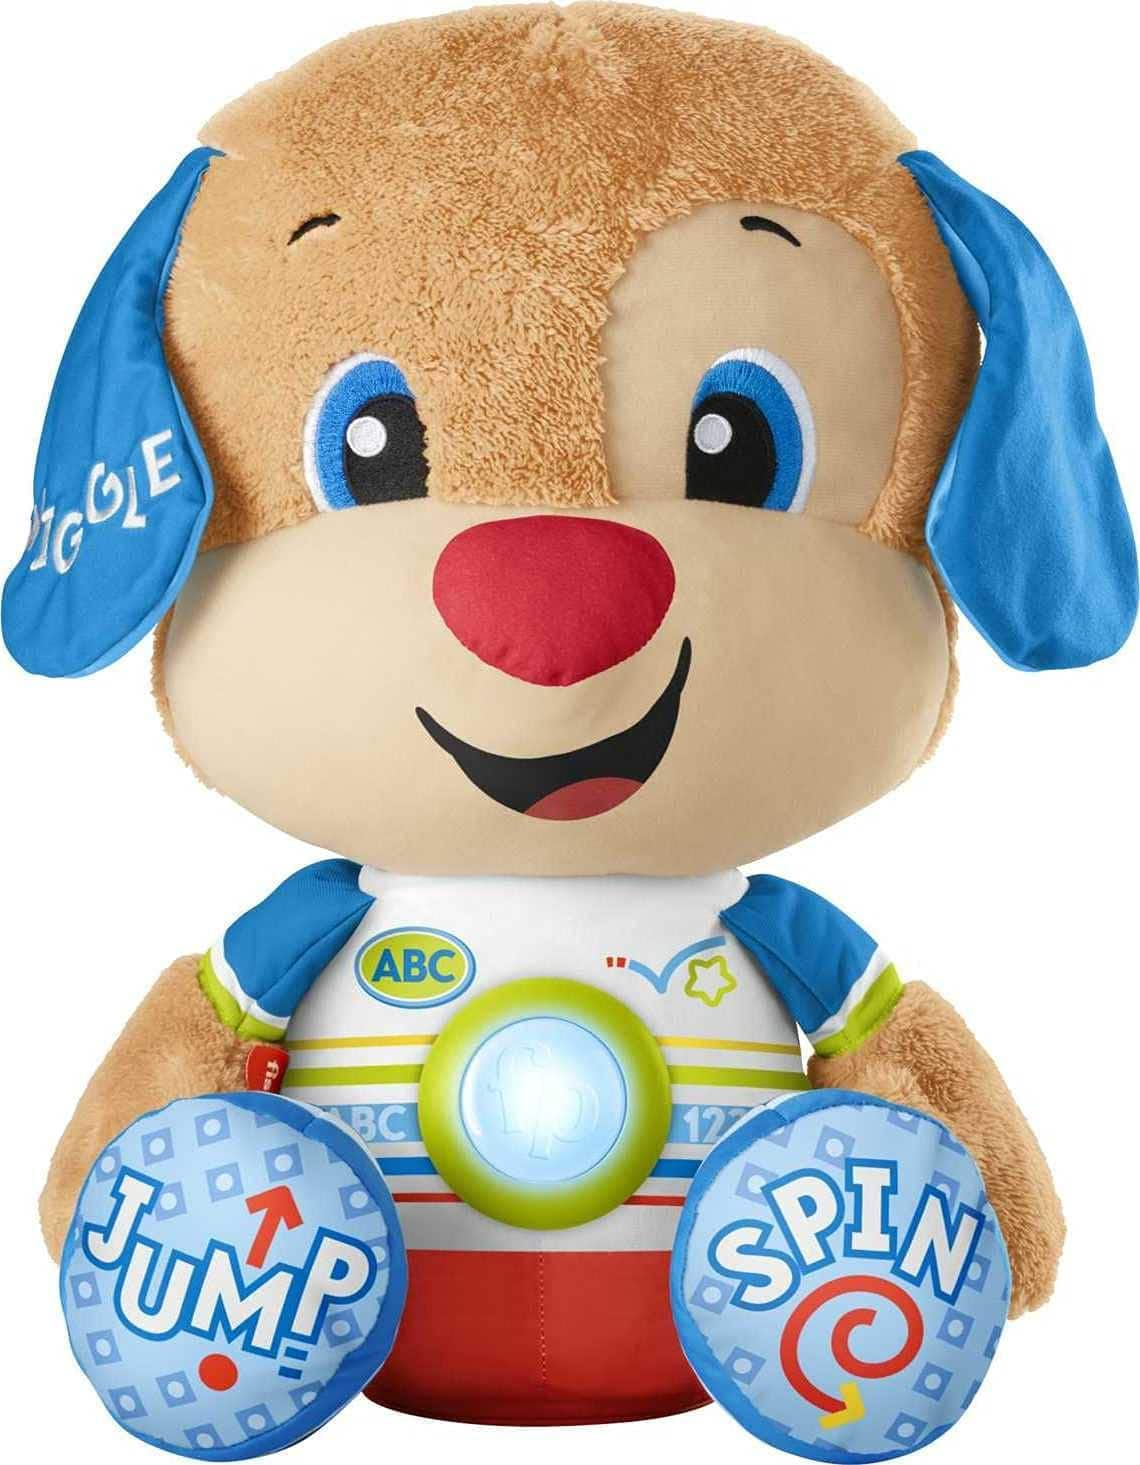 Fisher-Price Laugh & Learn So Big Puppy Interactive Musical Plush Toy $15.10 + Free Shipping w/ Amazon Prime or Orders $25+